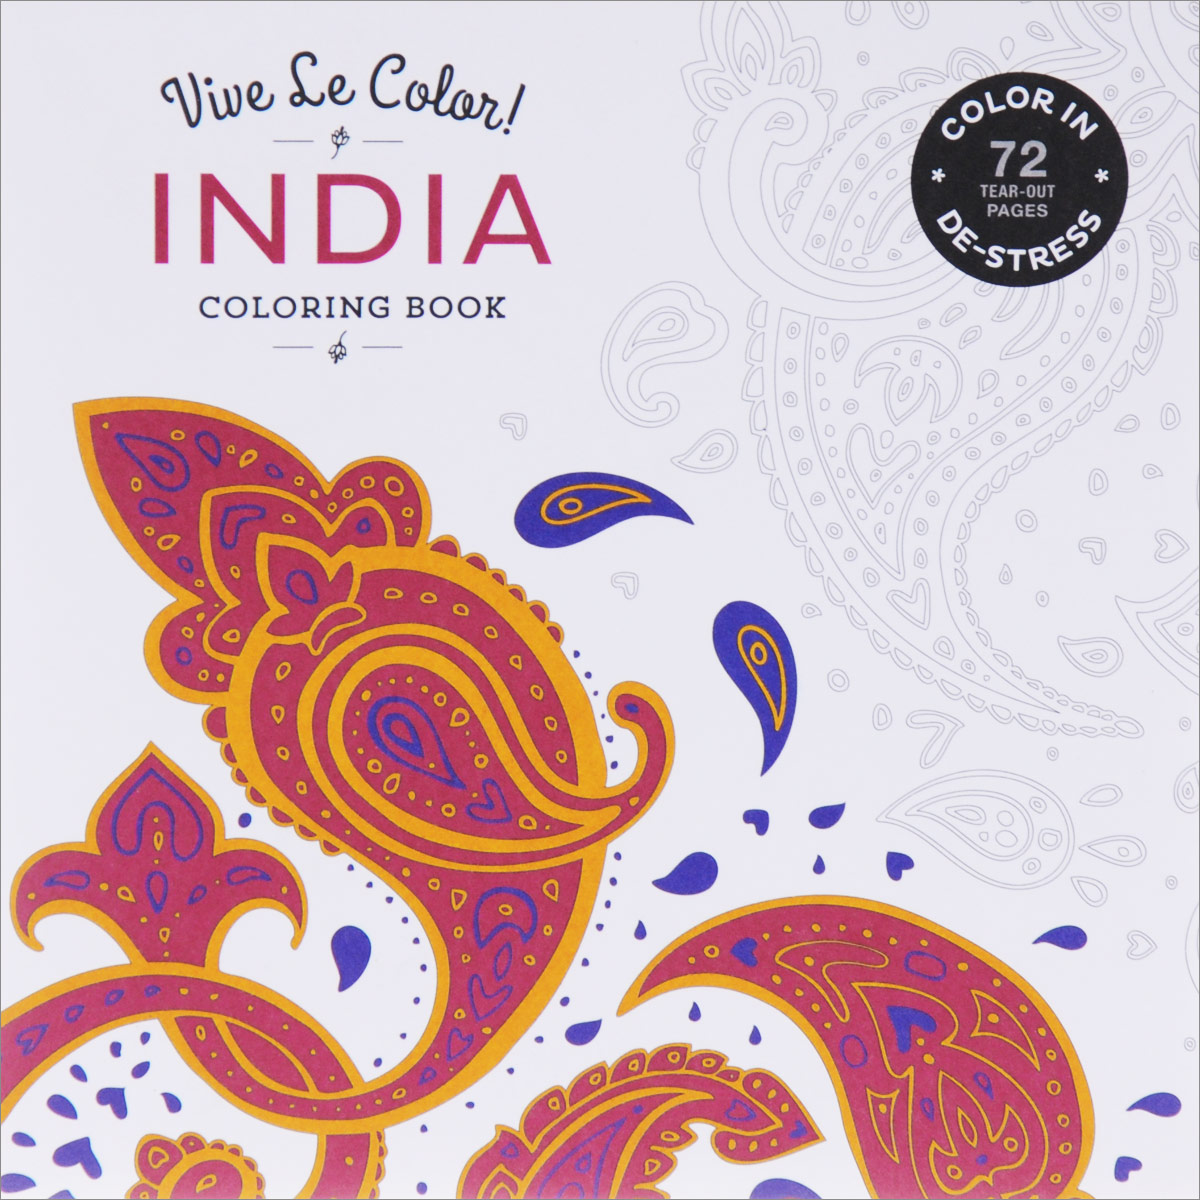 India: Coloring Book coloring of trees